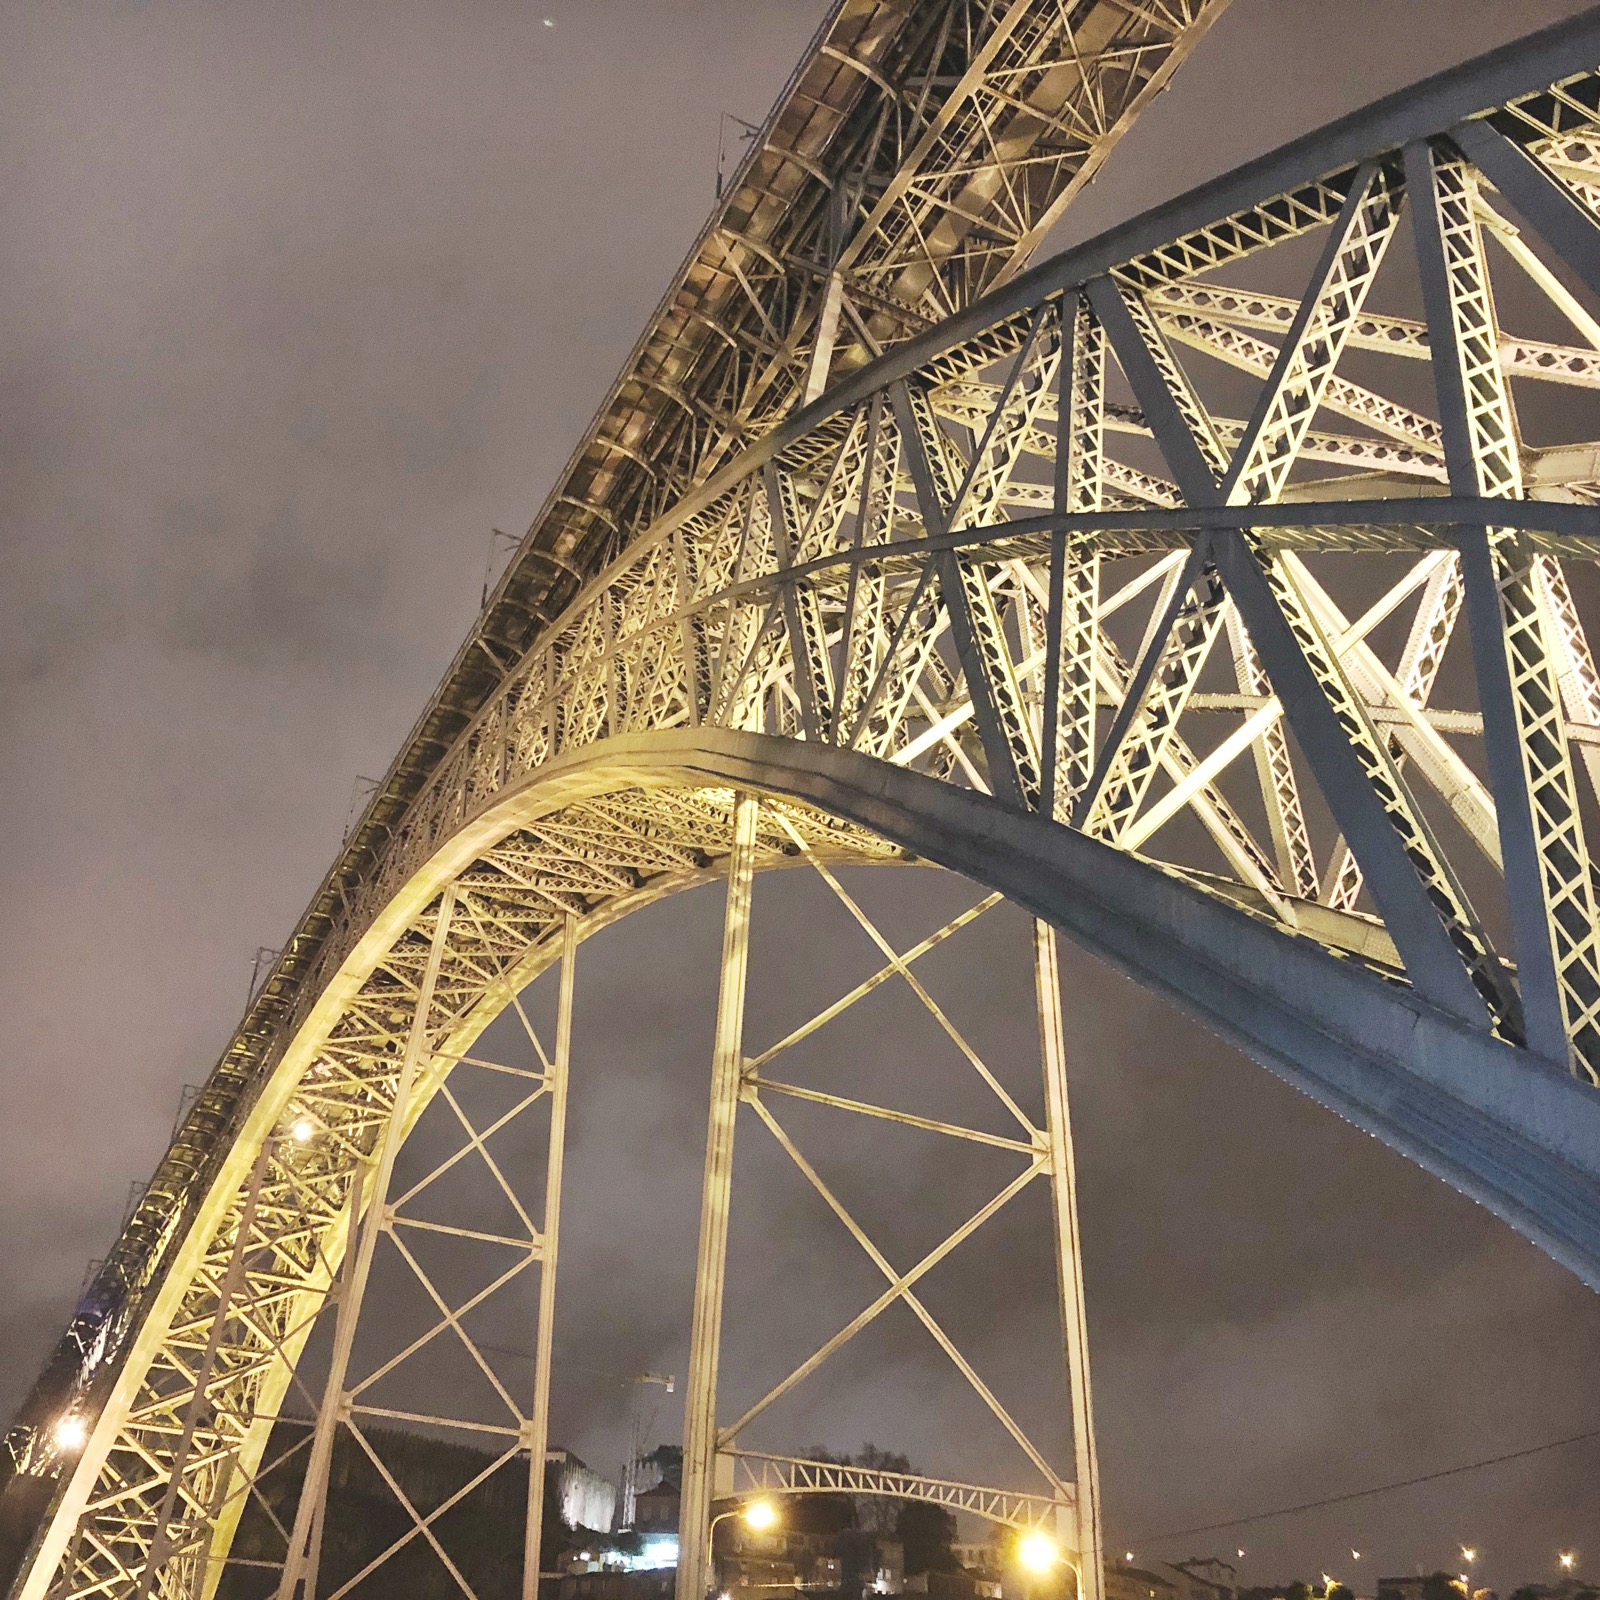 Walking under the Ponte Luis, all lit up at night.